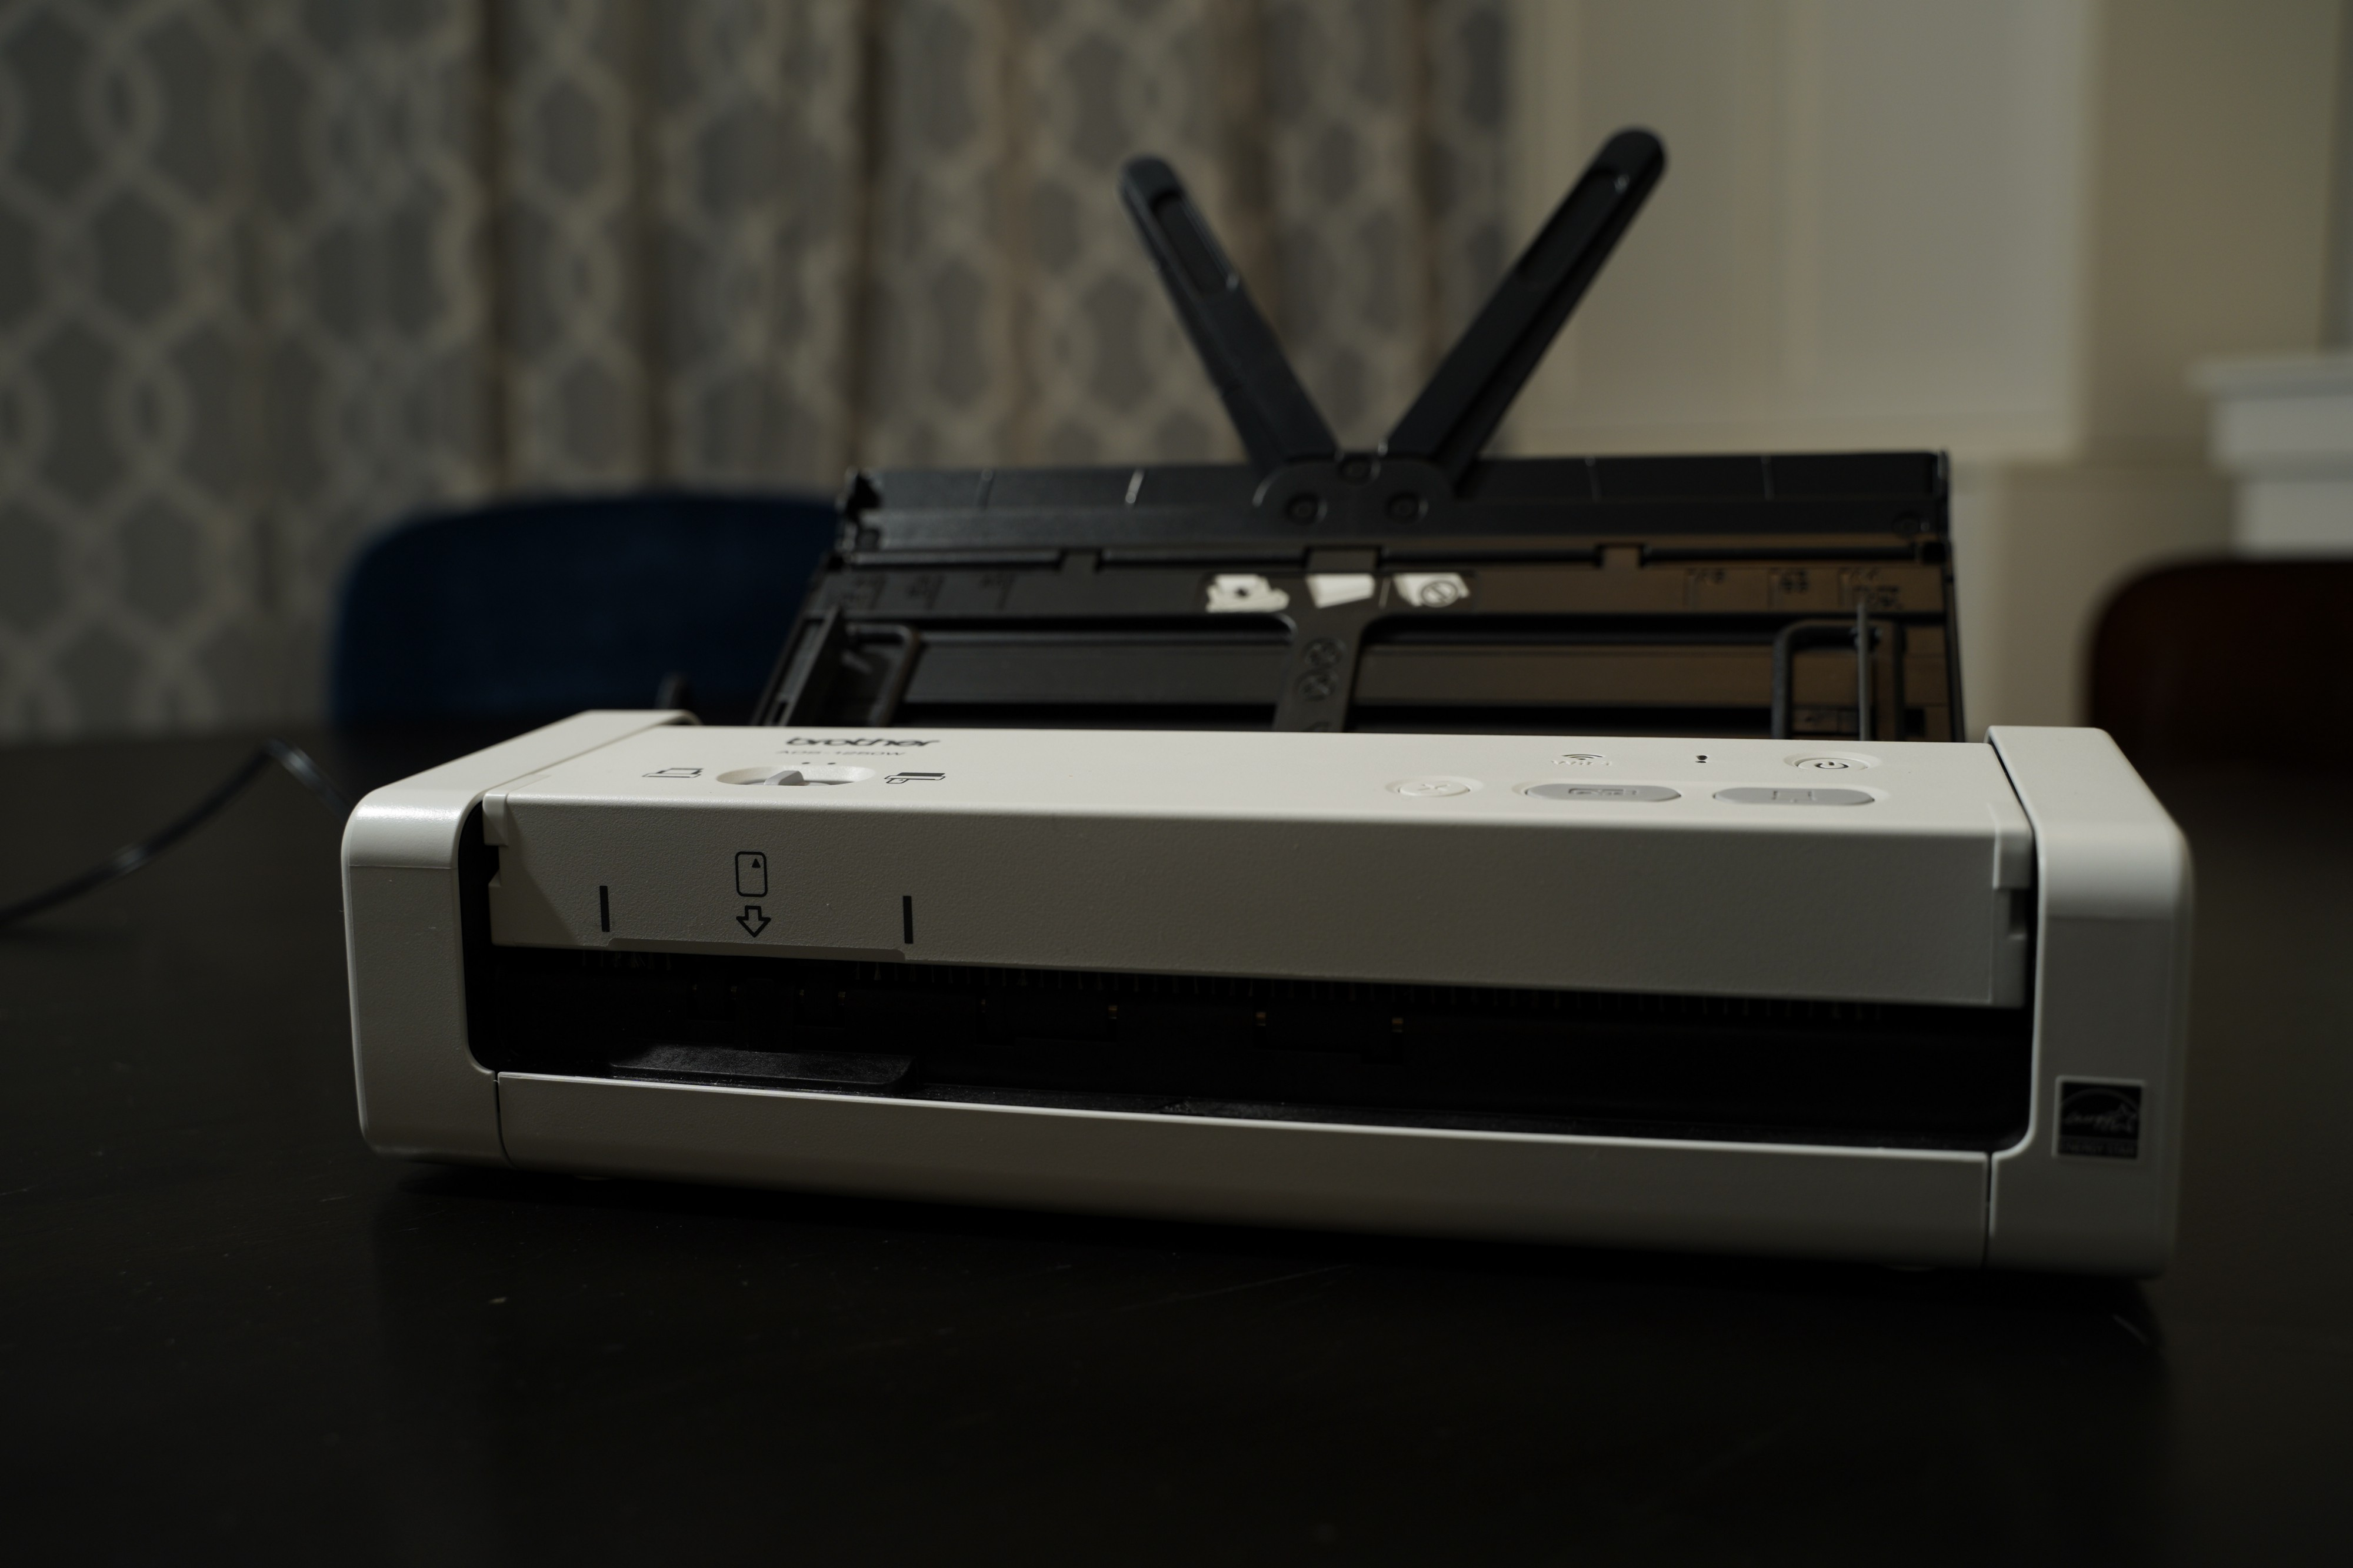 Brother ADS-1250W multi-document scanner.